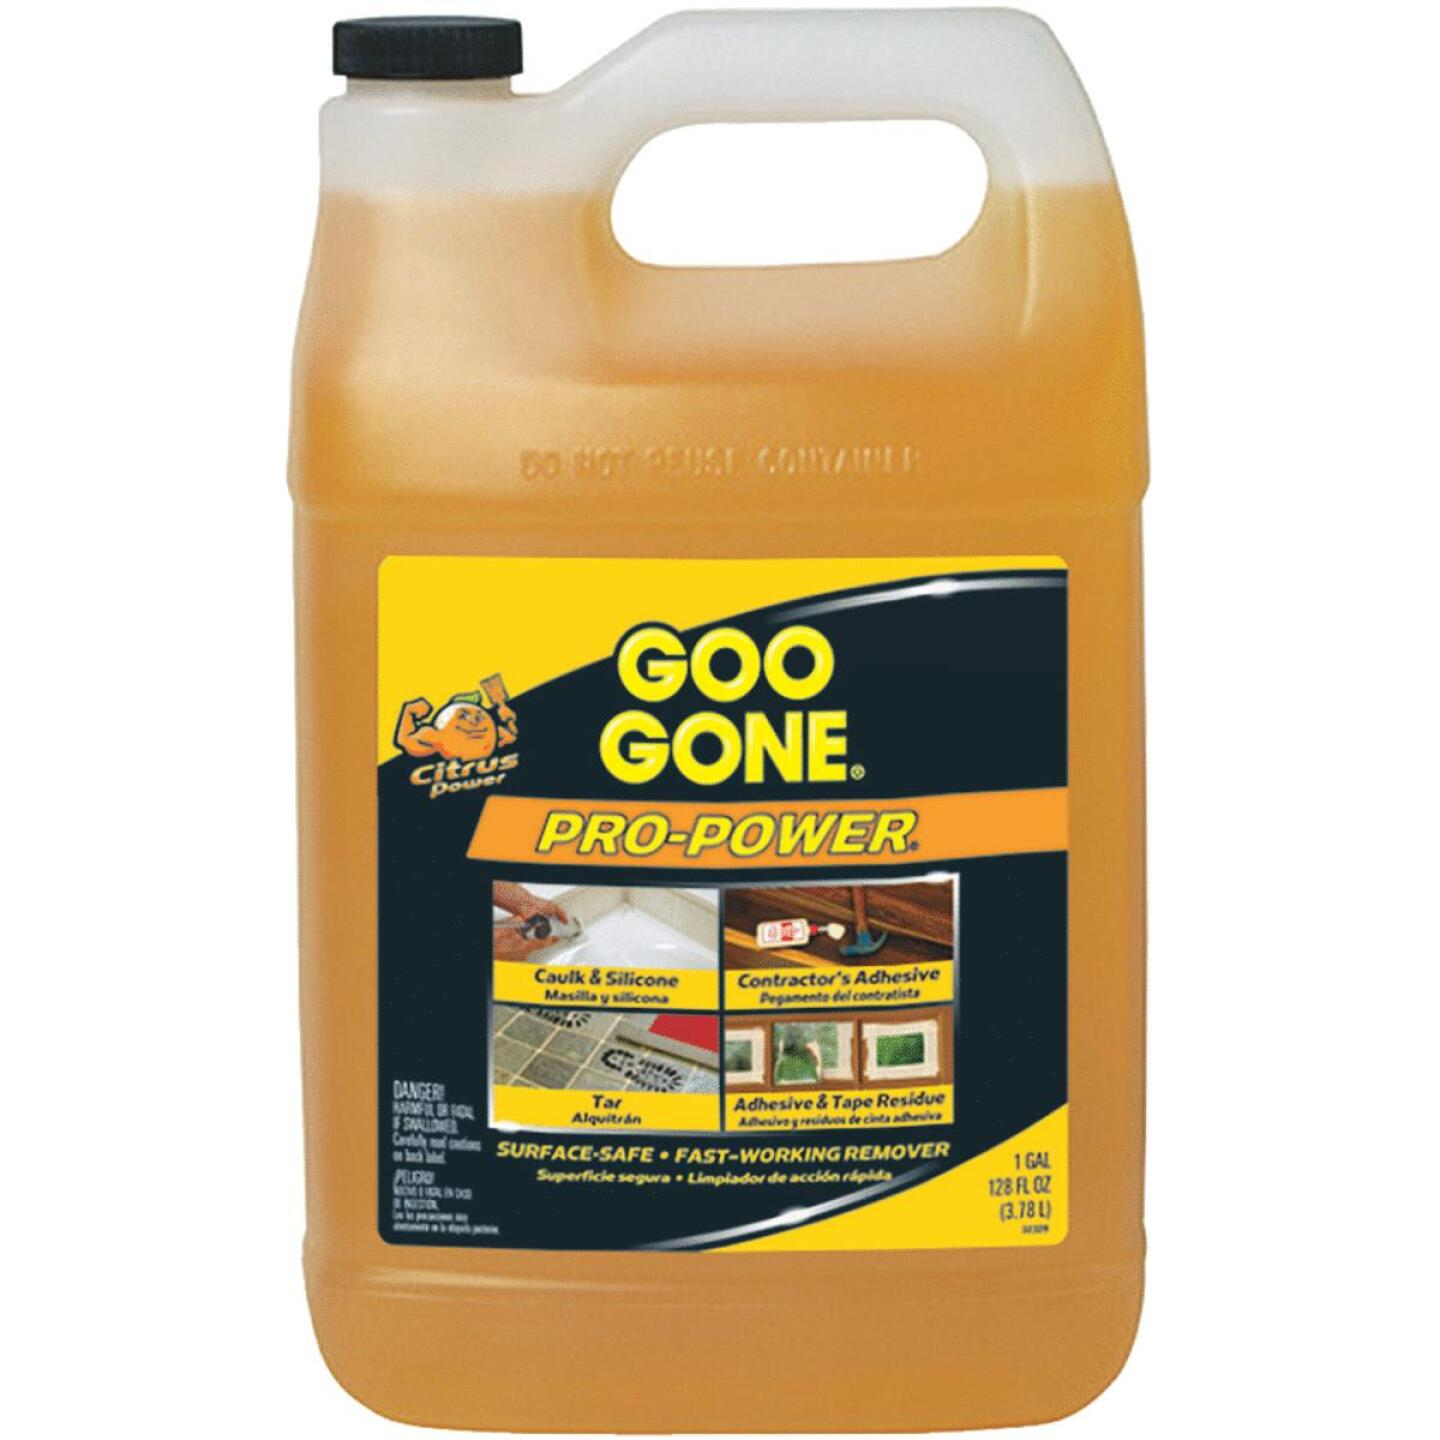 Goo Gone 1 Gal. Pro-Power Adhesive Remover Image 125